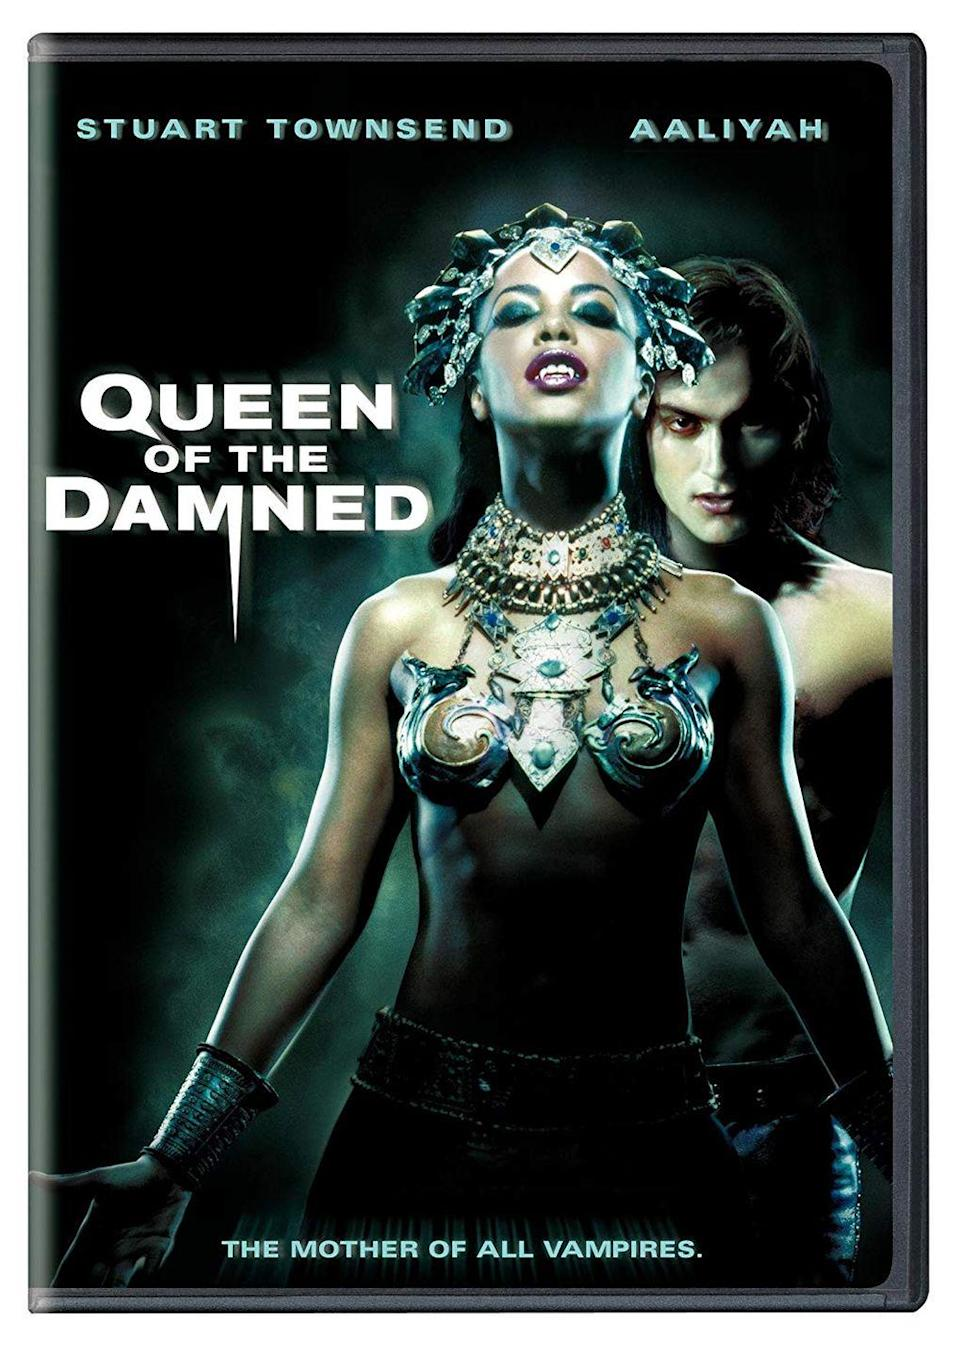 """<p><a class=""""link rapid-noclick-resp"""" href=""""https://www.amazon.com/Queen-Damned-Stuart-Townsend/dp/B004YSDTF2?tag=syn-yahoo-20&ascsubtag=%5Bartid%7C10050.g.22103622%5Bsrc%7Cyahoo-us"""" rel=""""nofollow noopener"""" target=""""_blank"""" data-ylk=""""slk:STREAM NOW"""">STREAM NOW</a></p><p>Aaliyah played the queen of all vampires, who's hell-bent on making undead rockstar Lestat (Stuart Townsend) her king.</p>"""